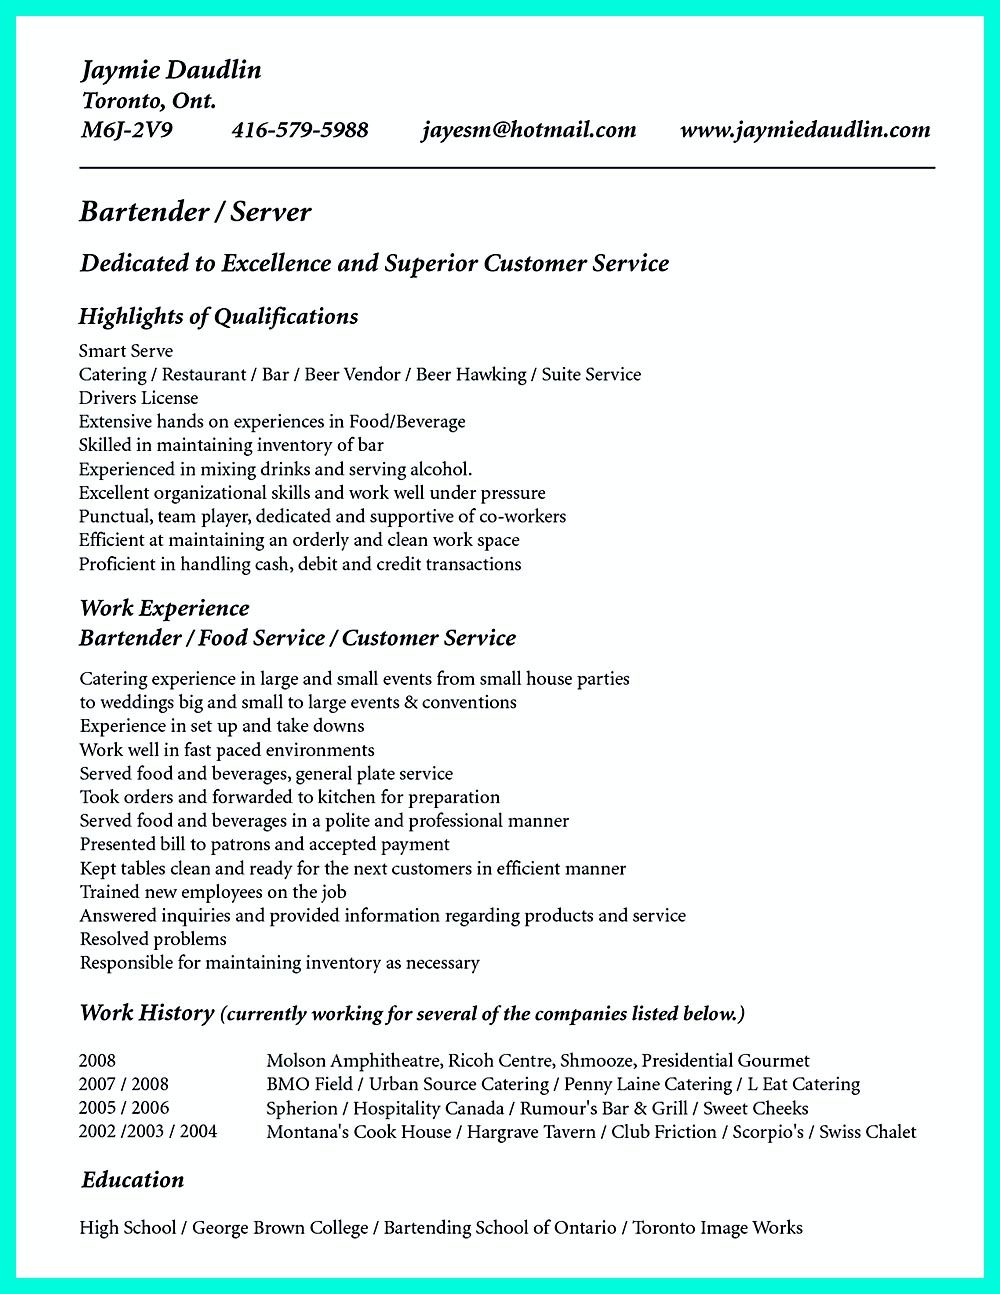 What To Put On A Resume For Skills Cool Cocktail Server Resume Skills Are Needed So Muchthe Company Or Design Decoration